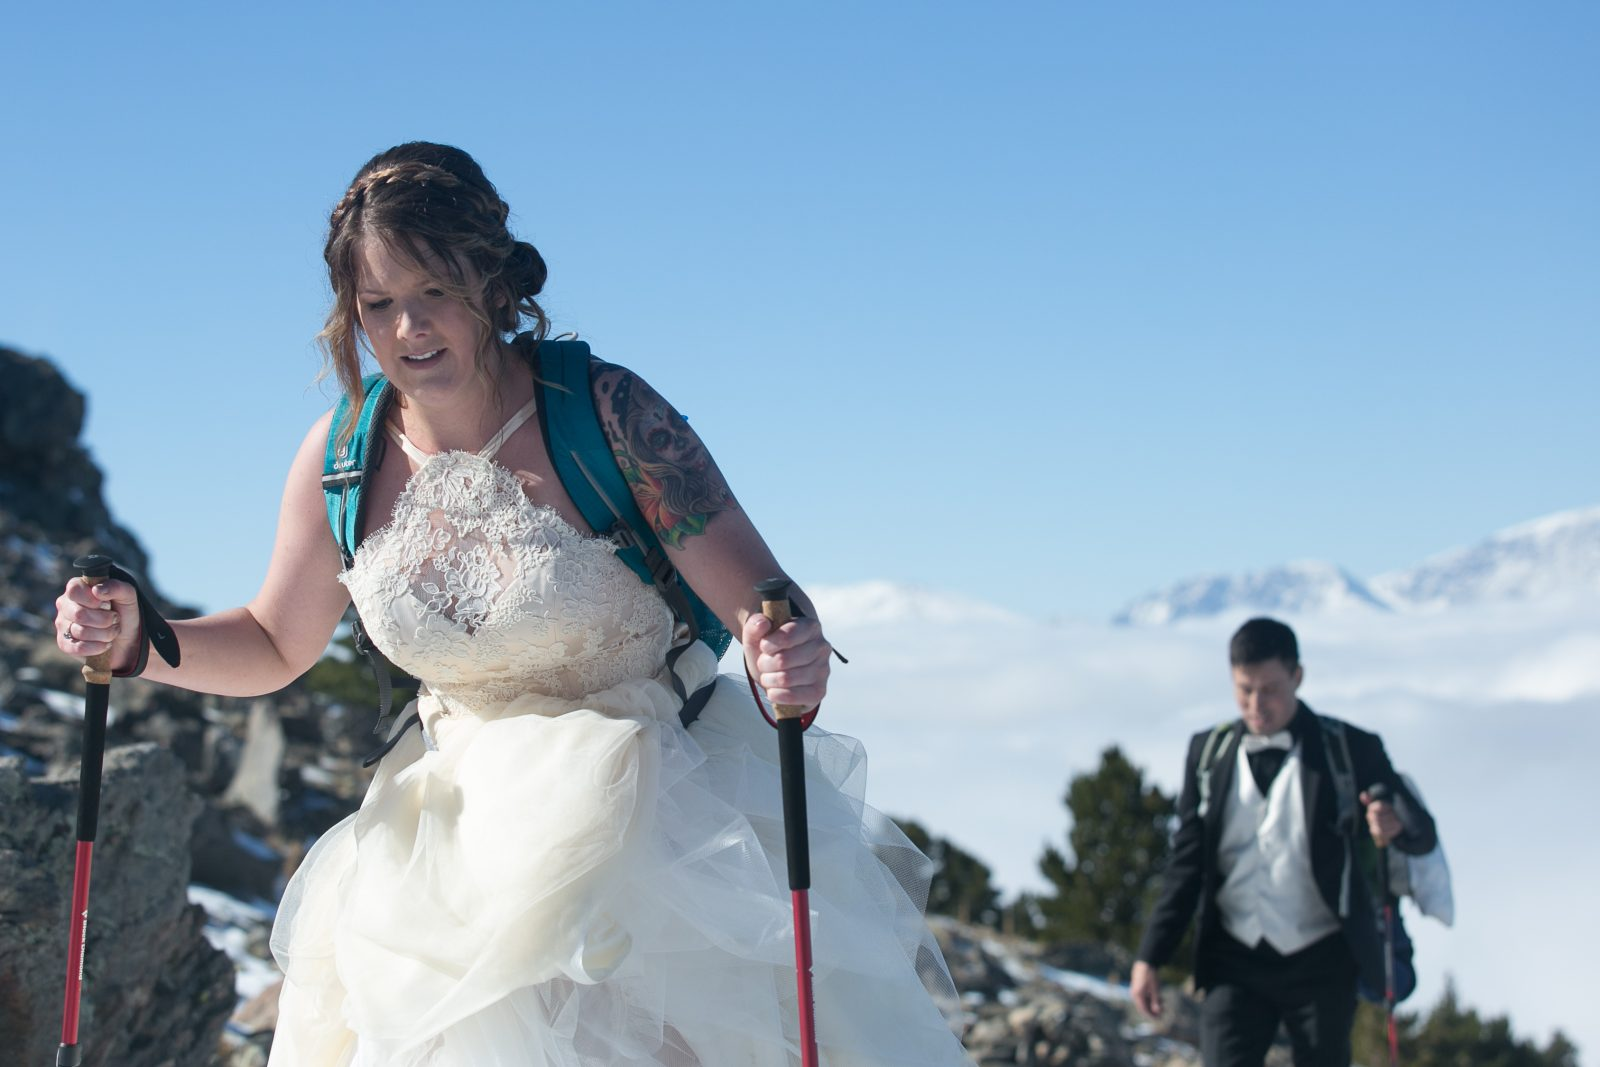 Arrance, Colorado, Estes Park, Liddell, Lindsay, Peak, Peaks, Thomas, Tom, Twin Sisters, autumn, destination, hike, snow, wedding